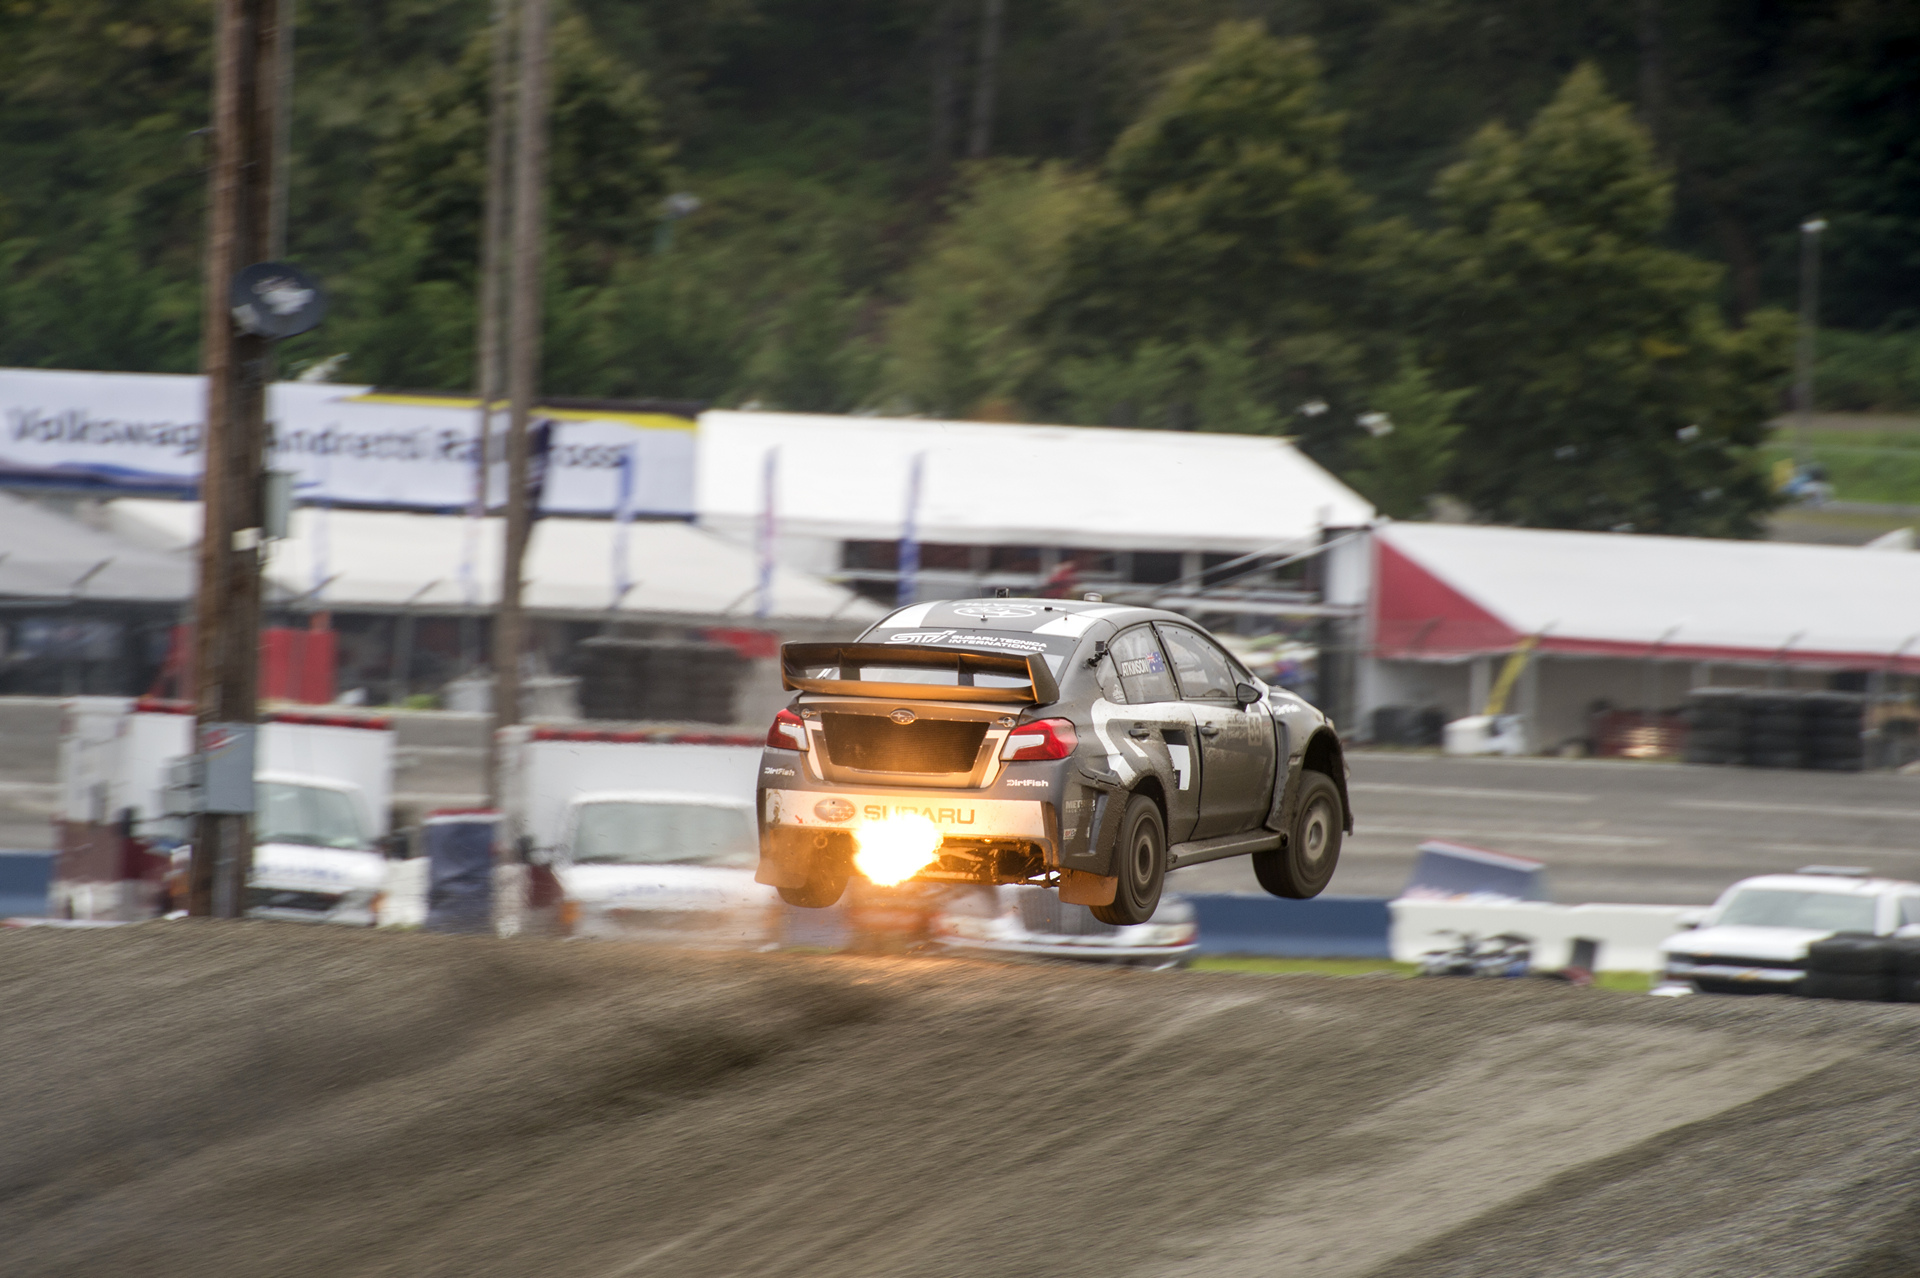 Chris Atkinson catching air at GRC Seattle © Fuji Heavy Industries, Ltd.